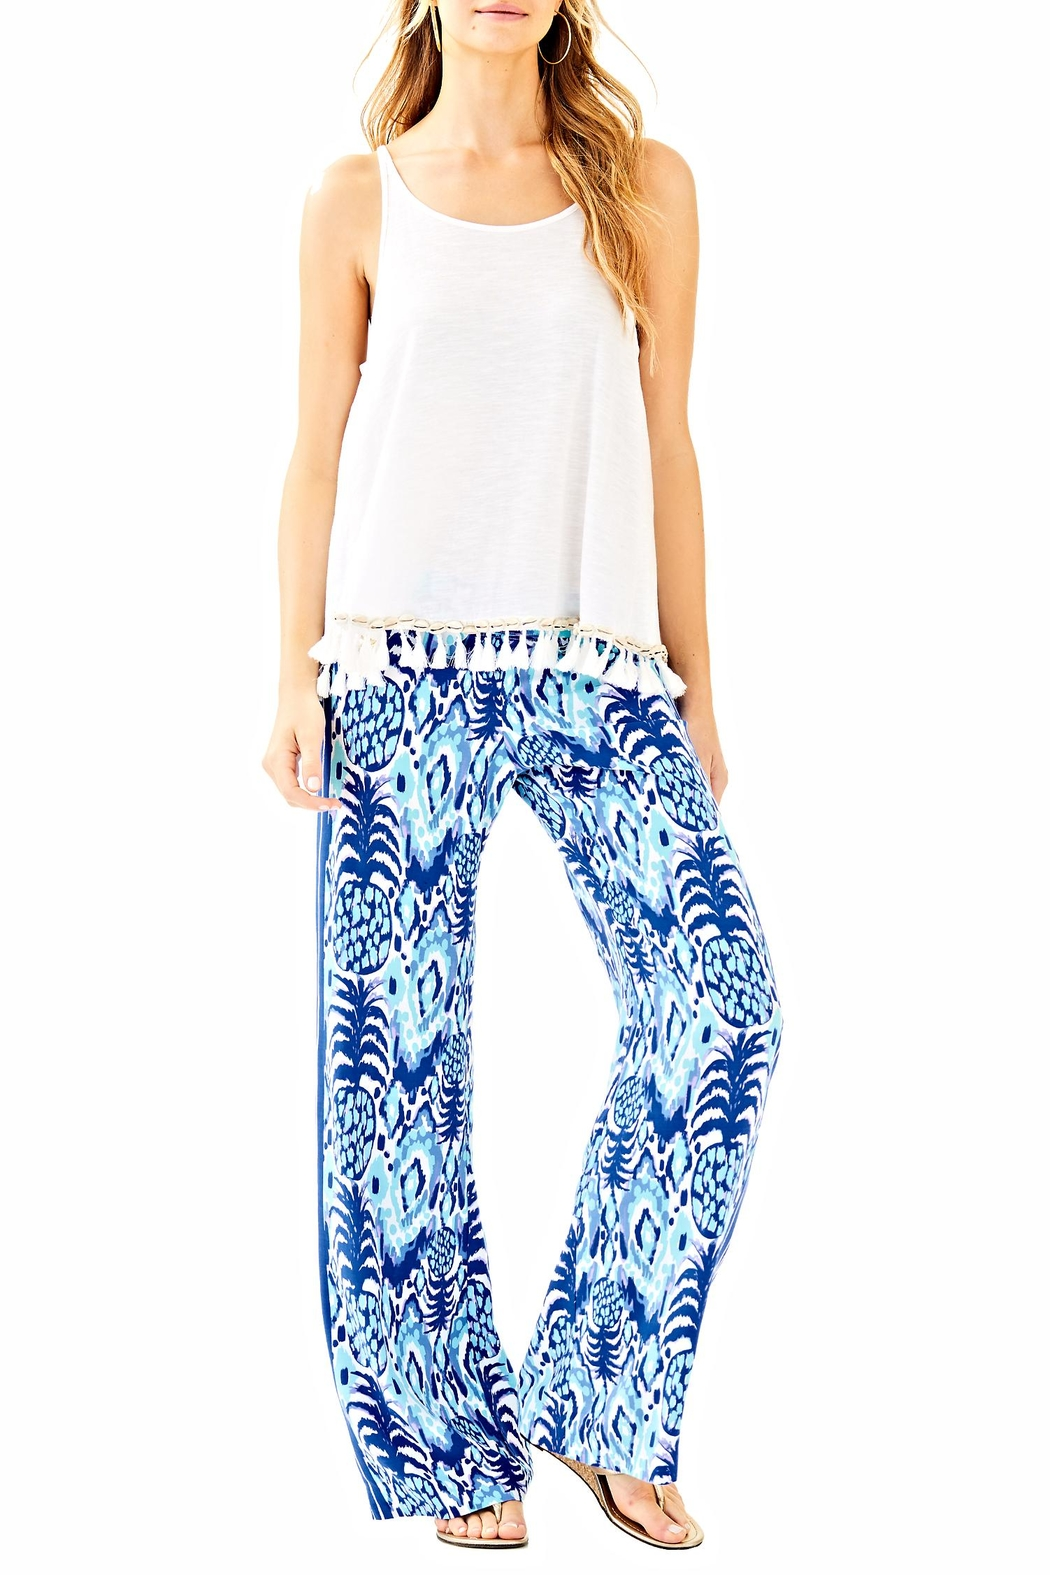 Lilly Pulitzer Balharbour Palazzo Pant - Front Cropped Image